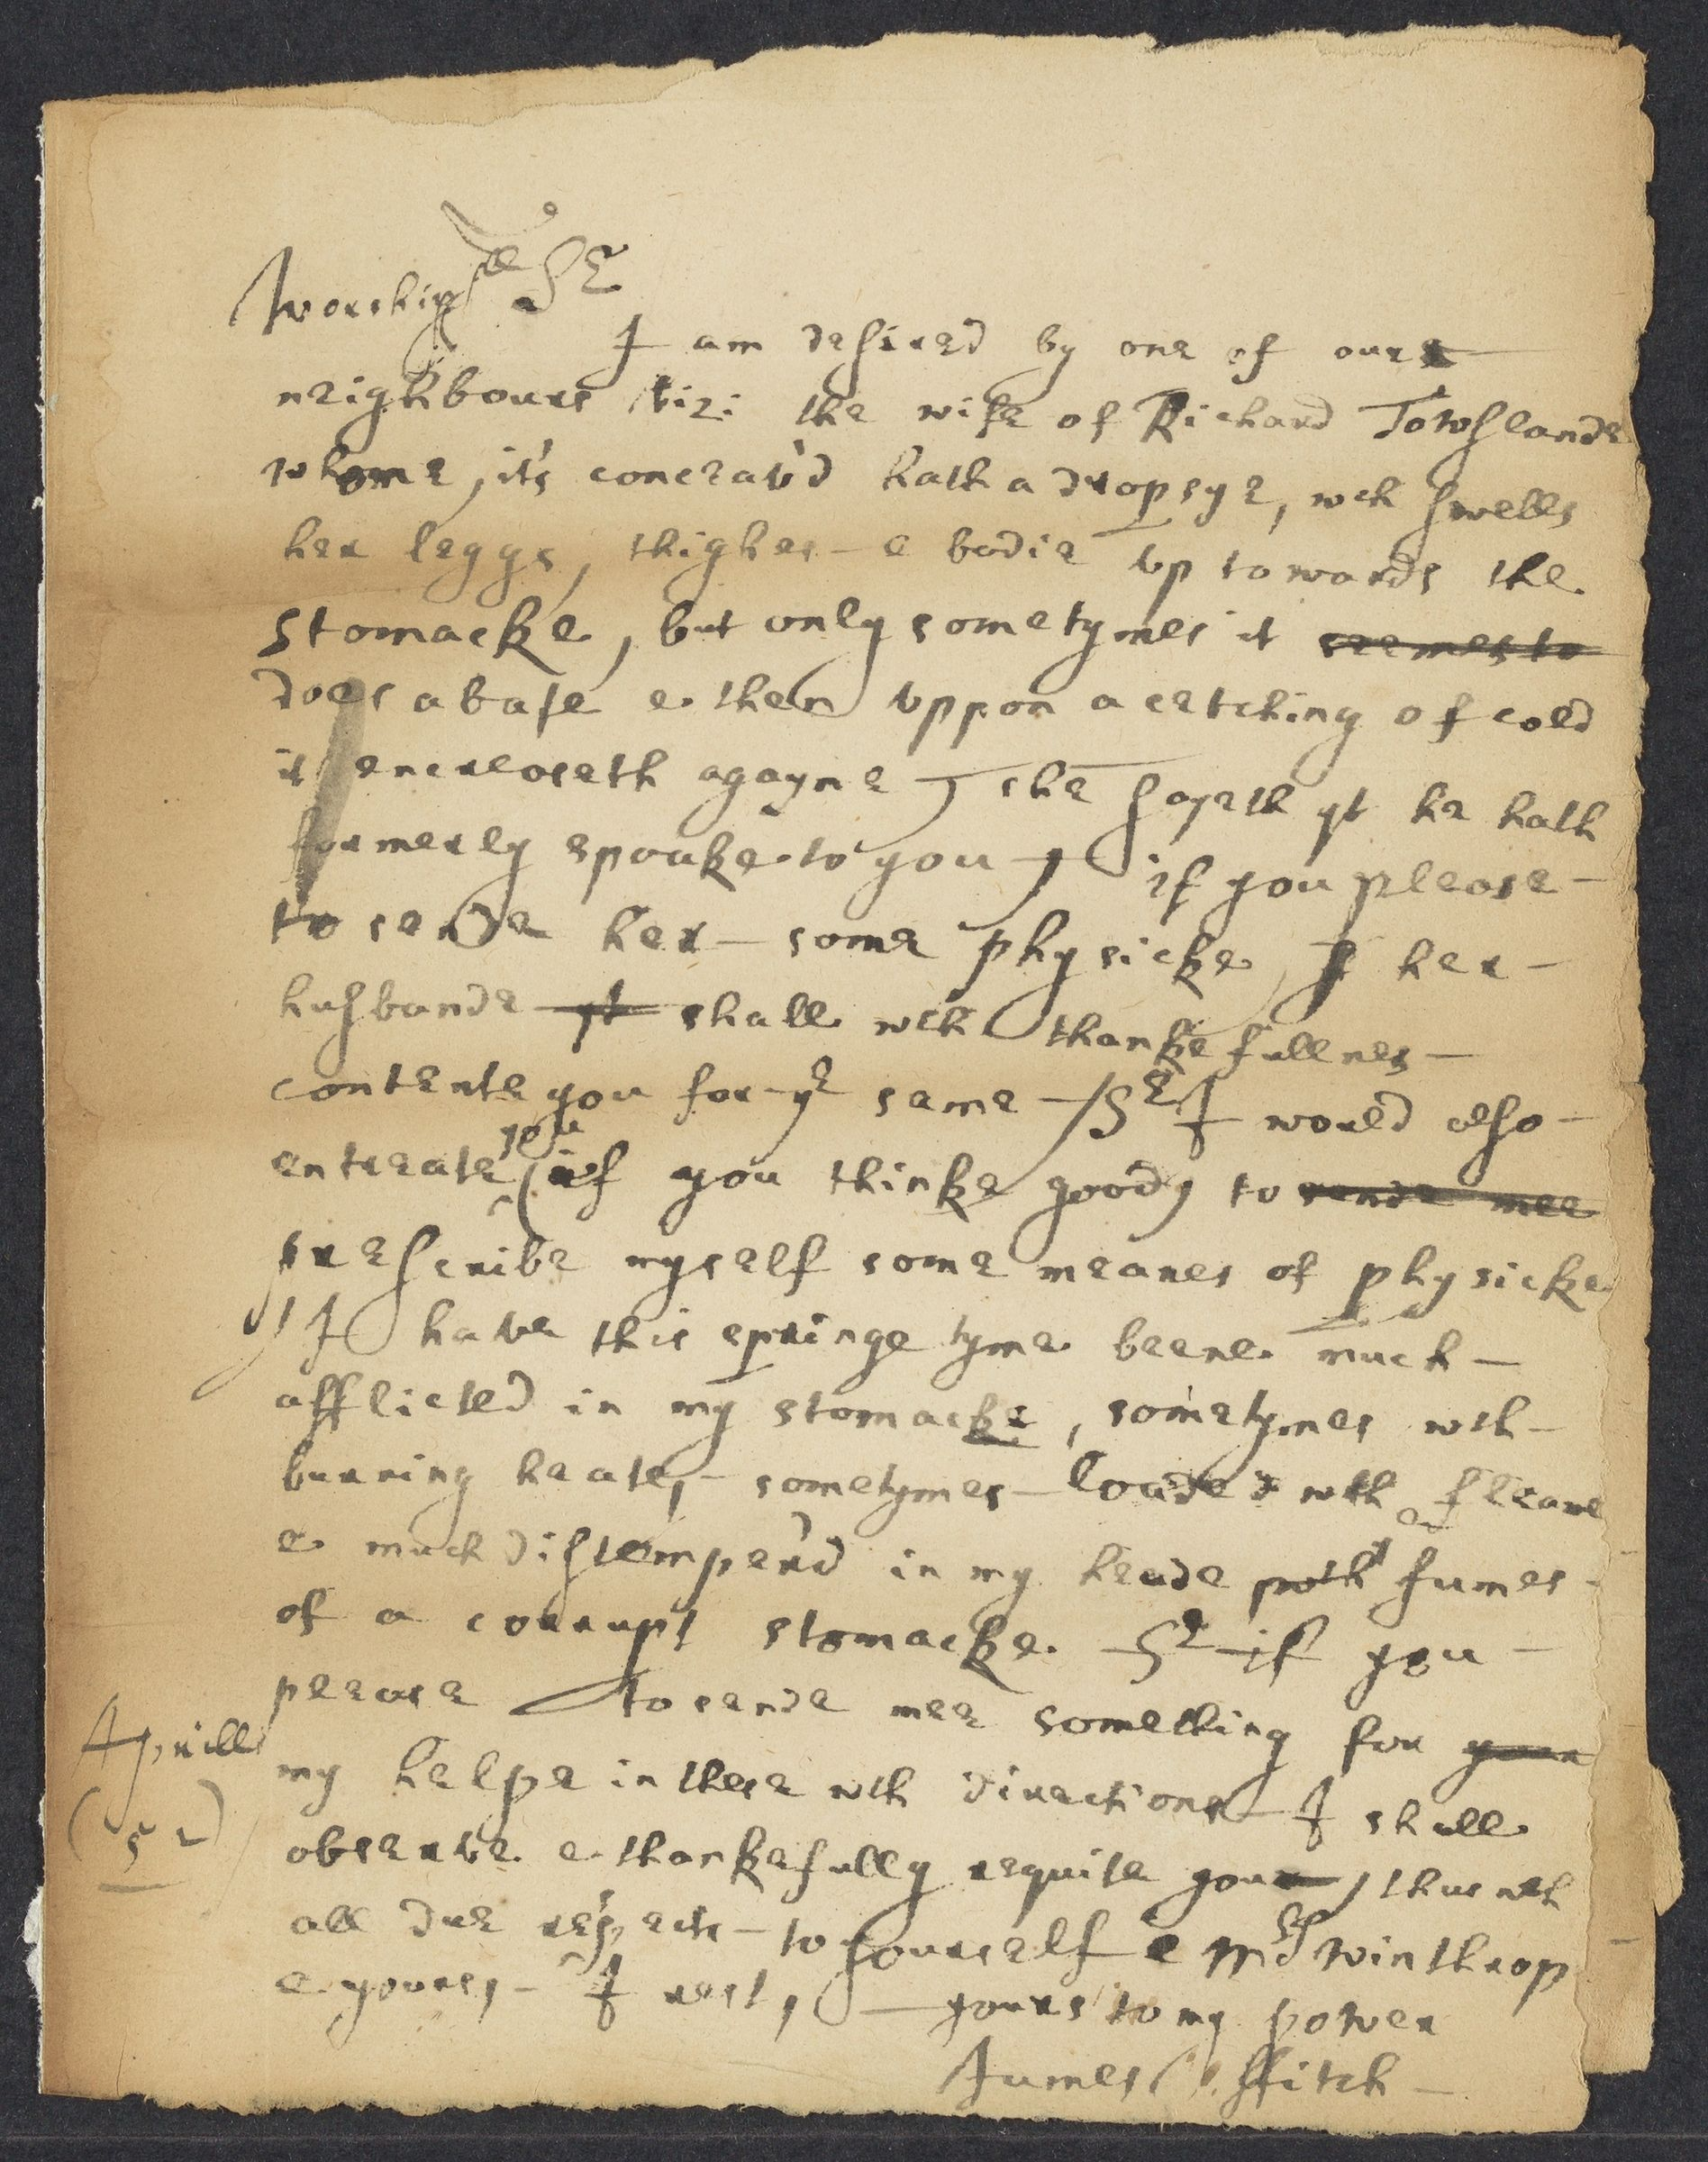 Fitch, James, 1622-1702, autographed letter signed to John Winthrop; Saybrooke [sic], Conn., 1 side (2 pages), 1652 April